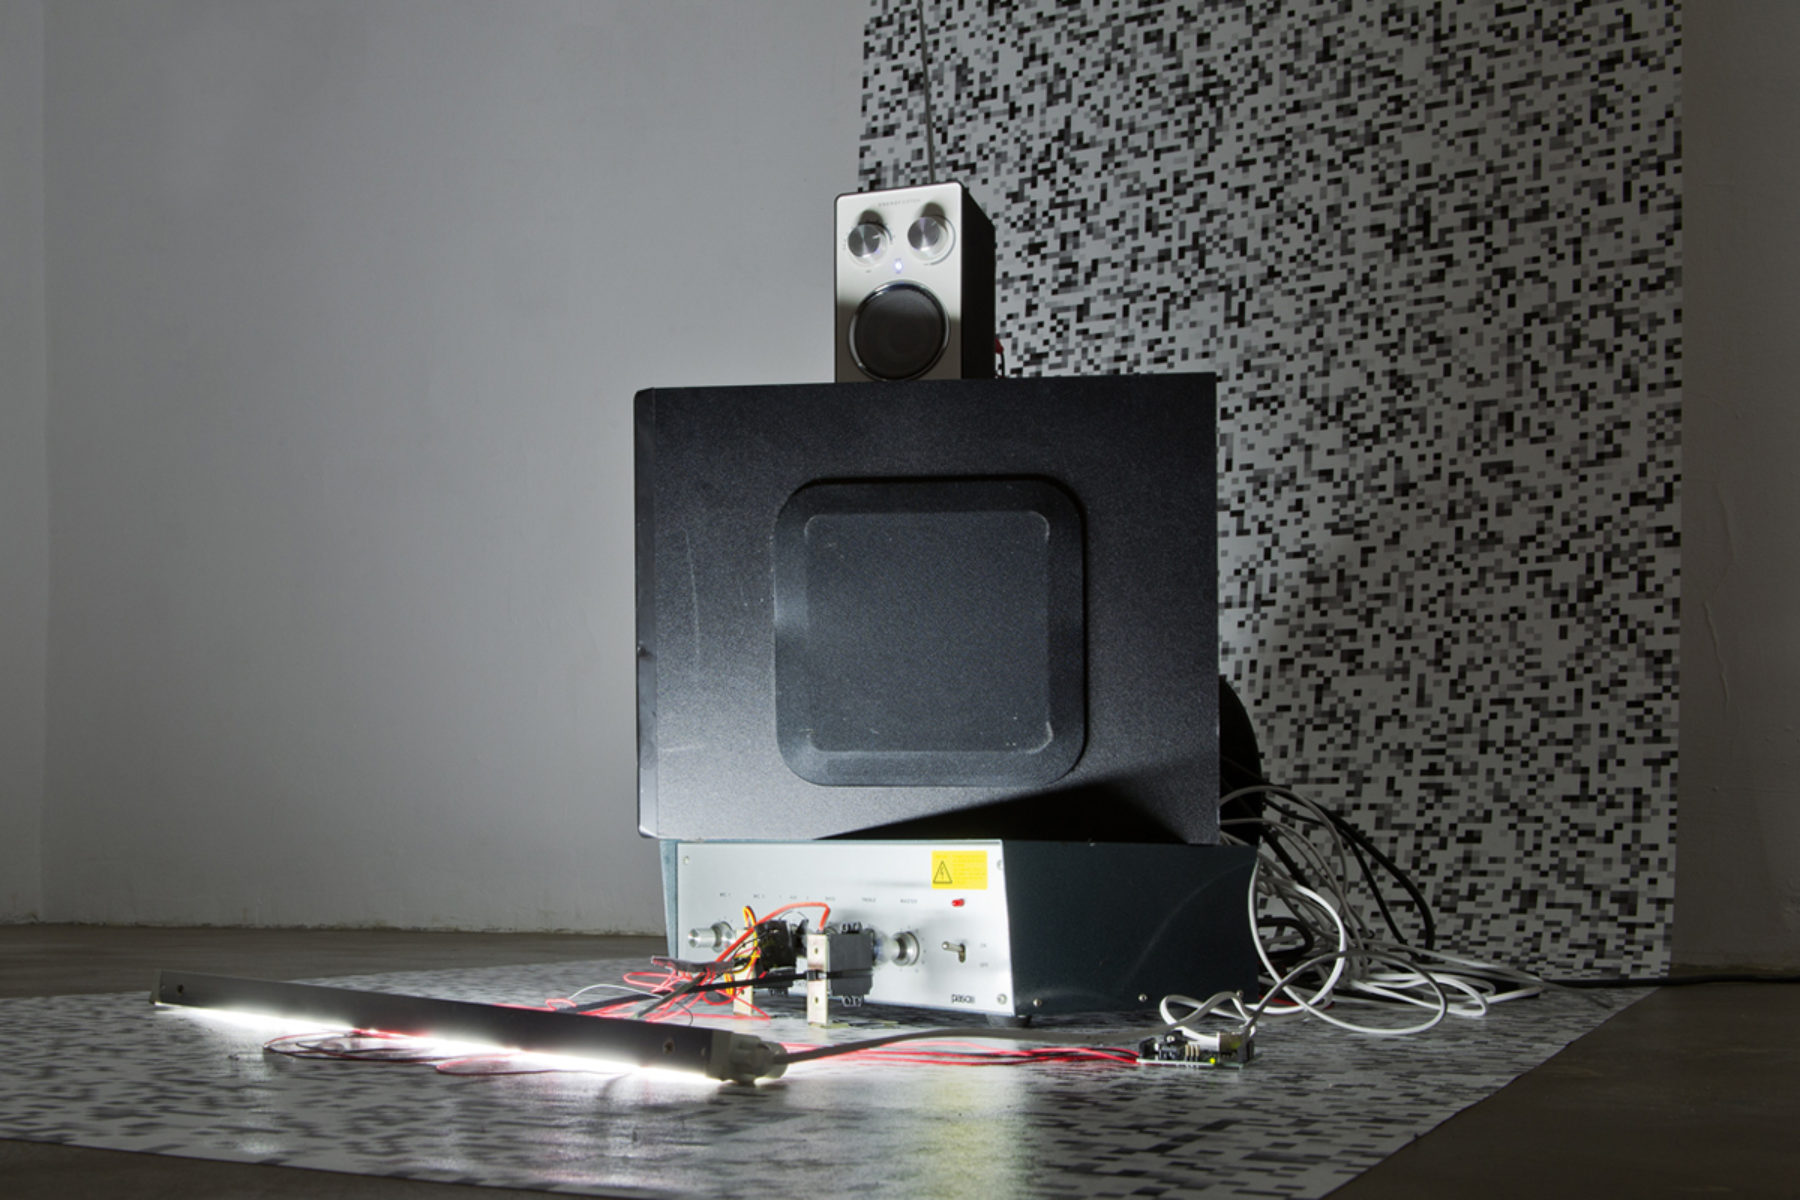 Richard Loskot, Ocean System, 2012, radio tuner, speaker, light, digital prints, neon light, mix media,b